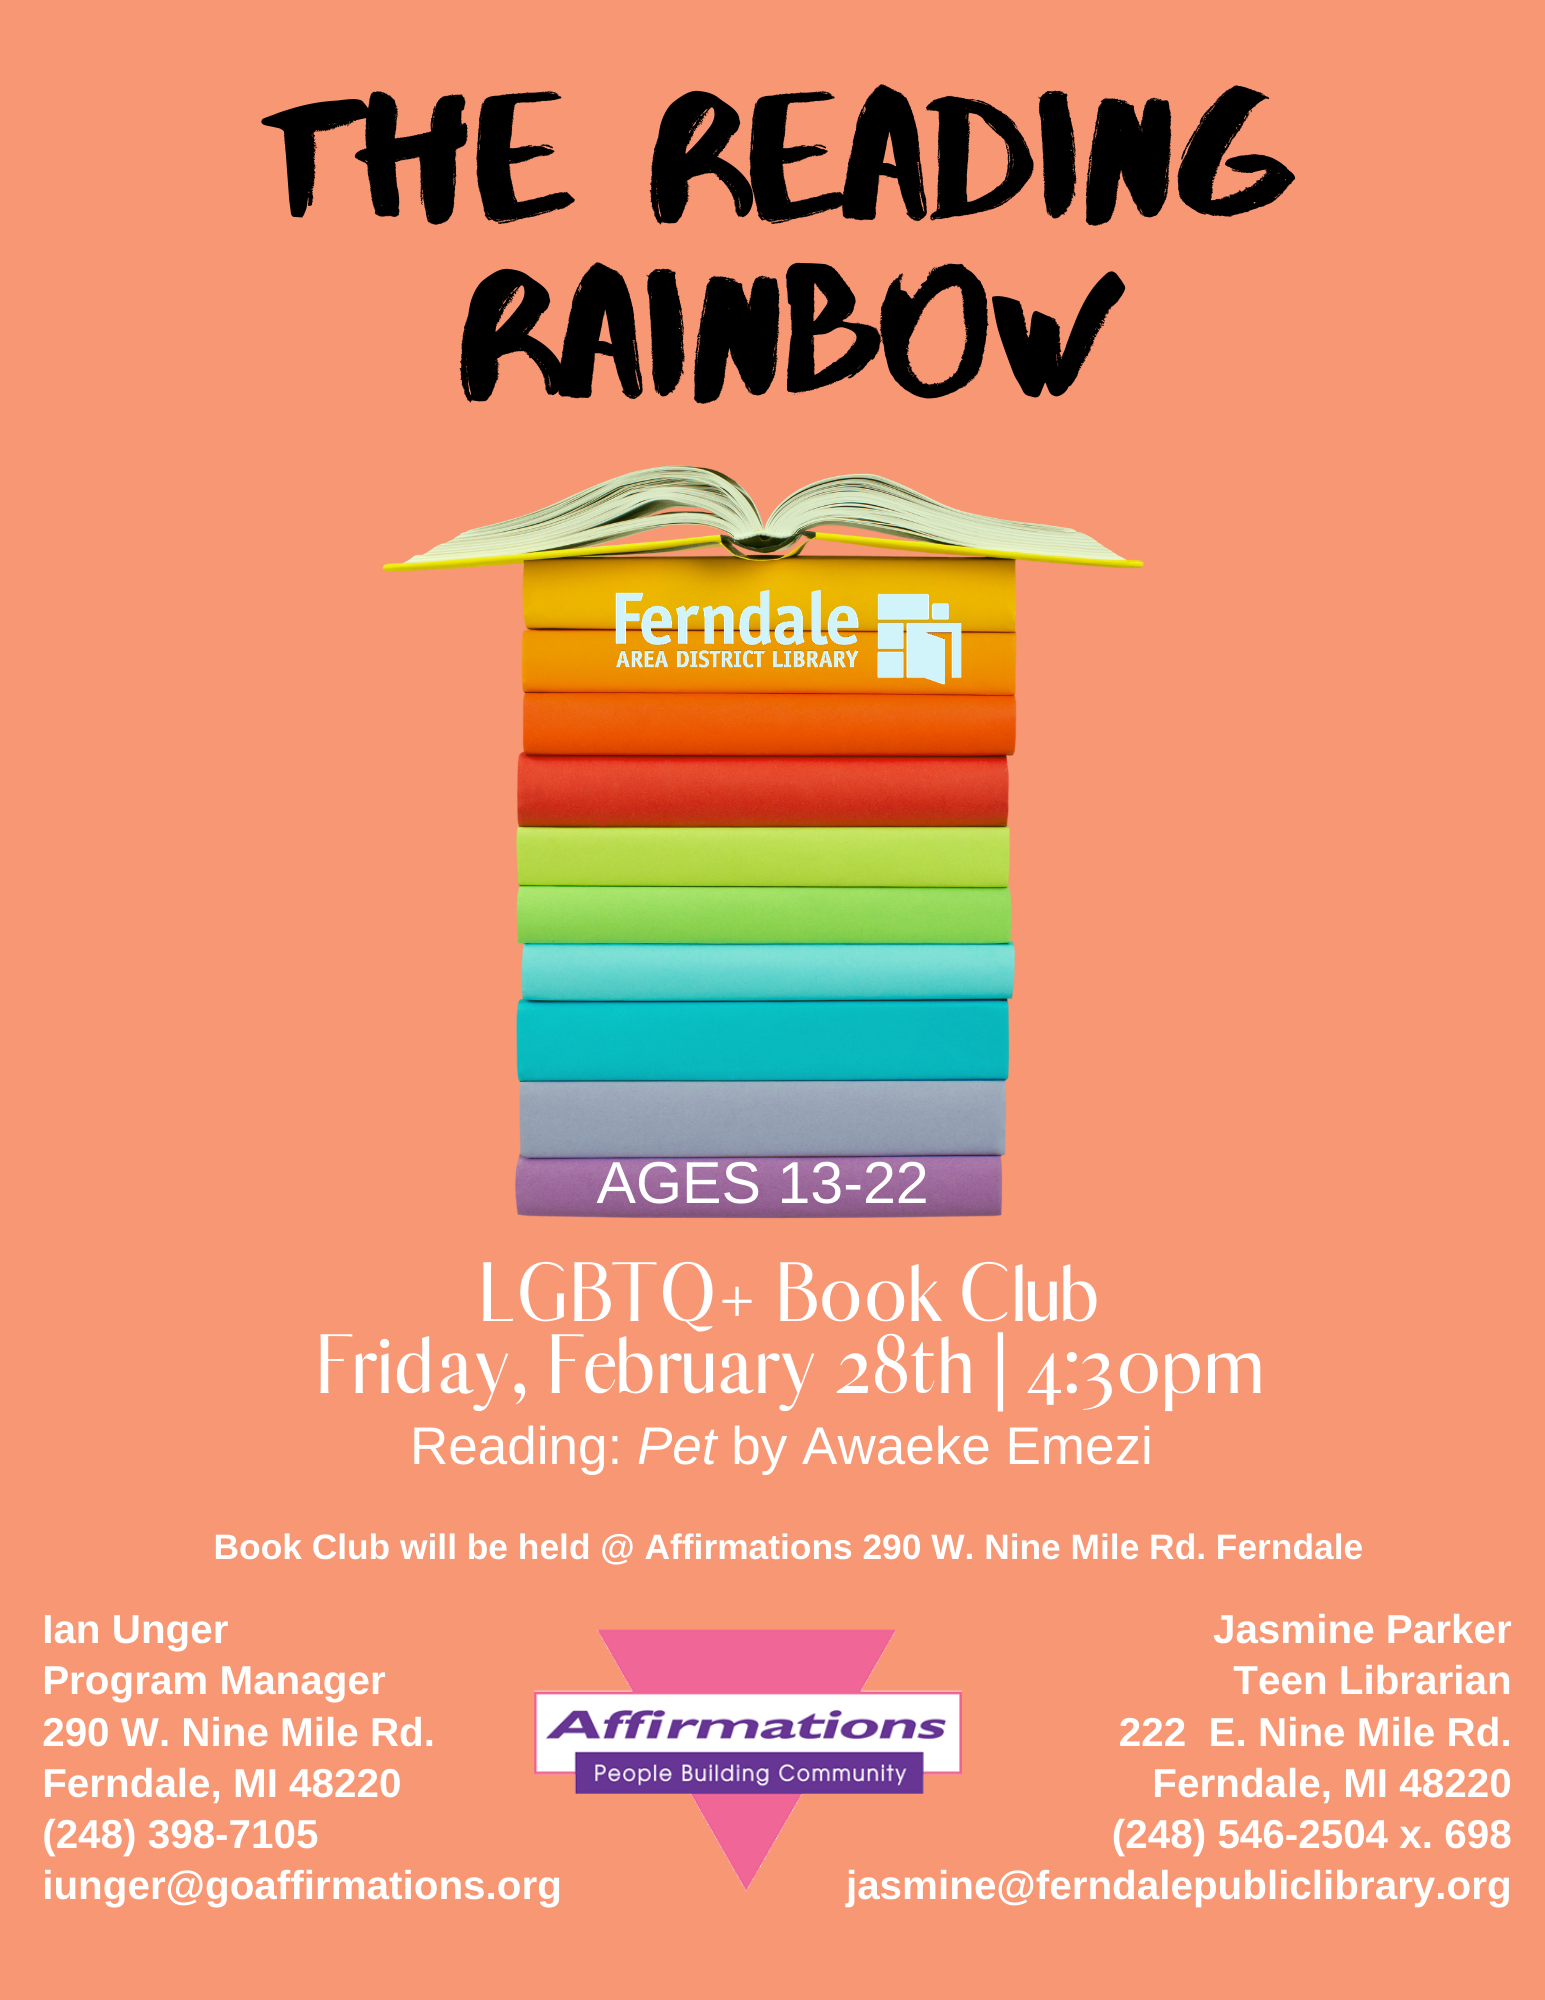 Reading Rainbow BookClub @ Affirmations (Ages 13-22)